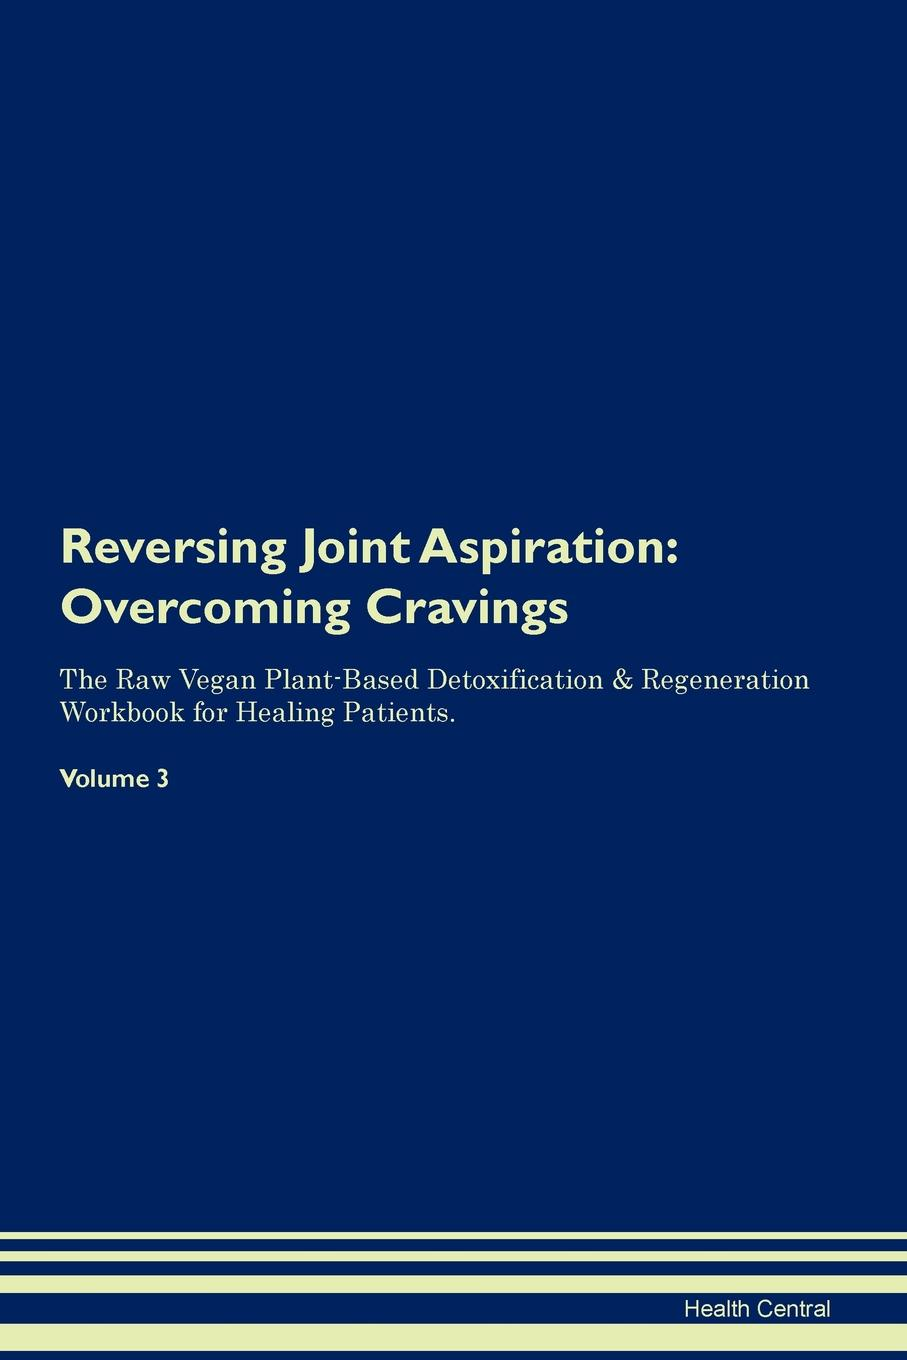 Health Central Reversing Joint Aspiration. Overcoming Cravings The Raw Vegan Plant-Based Detoxification . Regeneration Workbook for Healing Patients. Volume 3 100% positive health glucosamine chondroitin sulfate high strength joint support pain relaxation